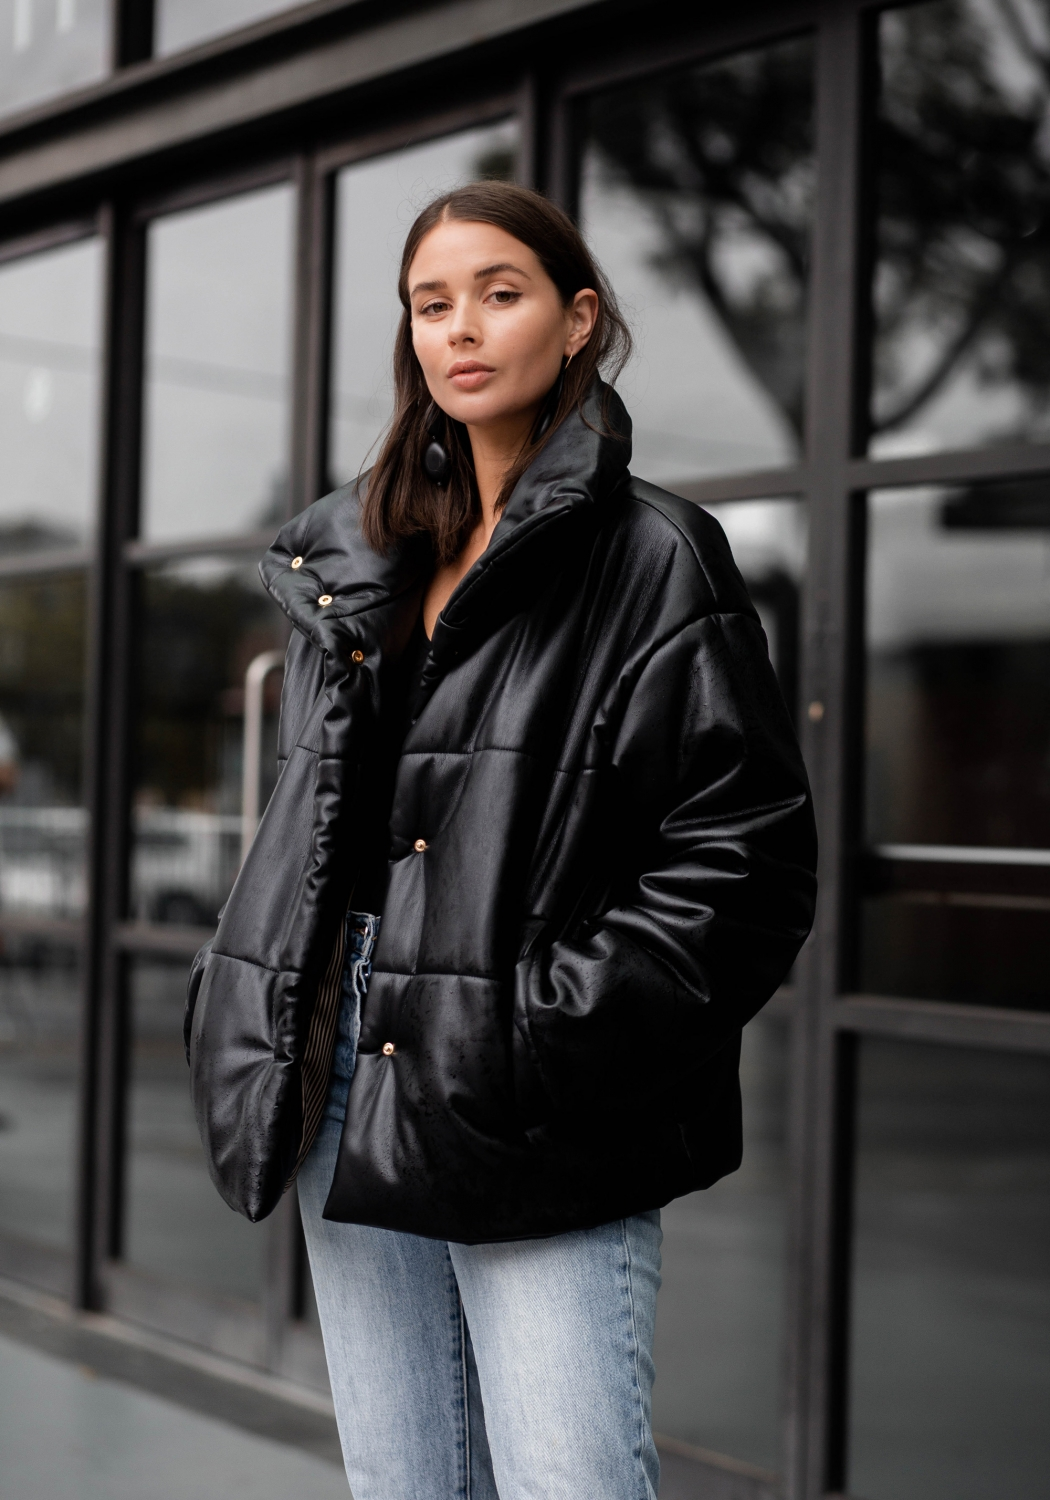 MBFWA Sydney Fashion Week 2018 | Day 1 | Outfit |Nanushka black puffy jacket | Style | HarperandHarley